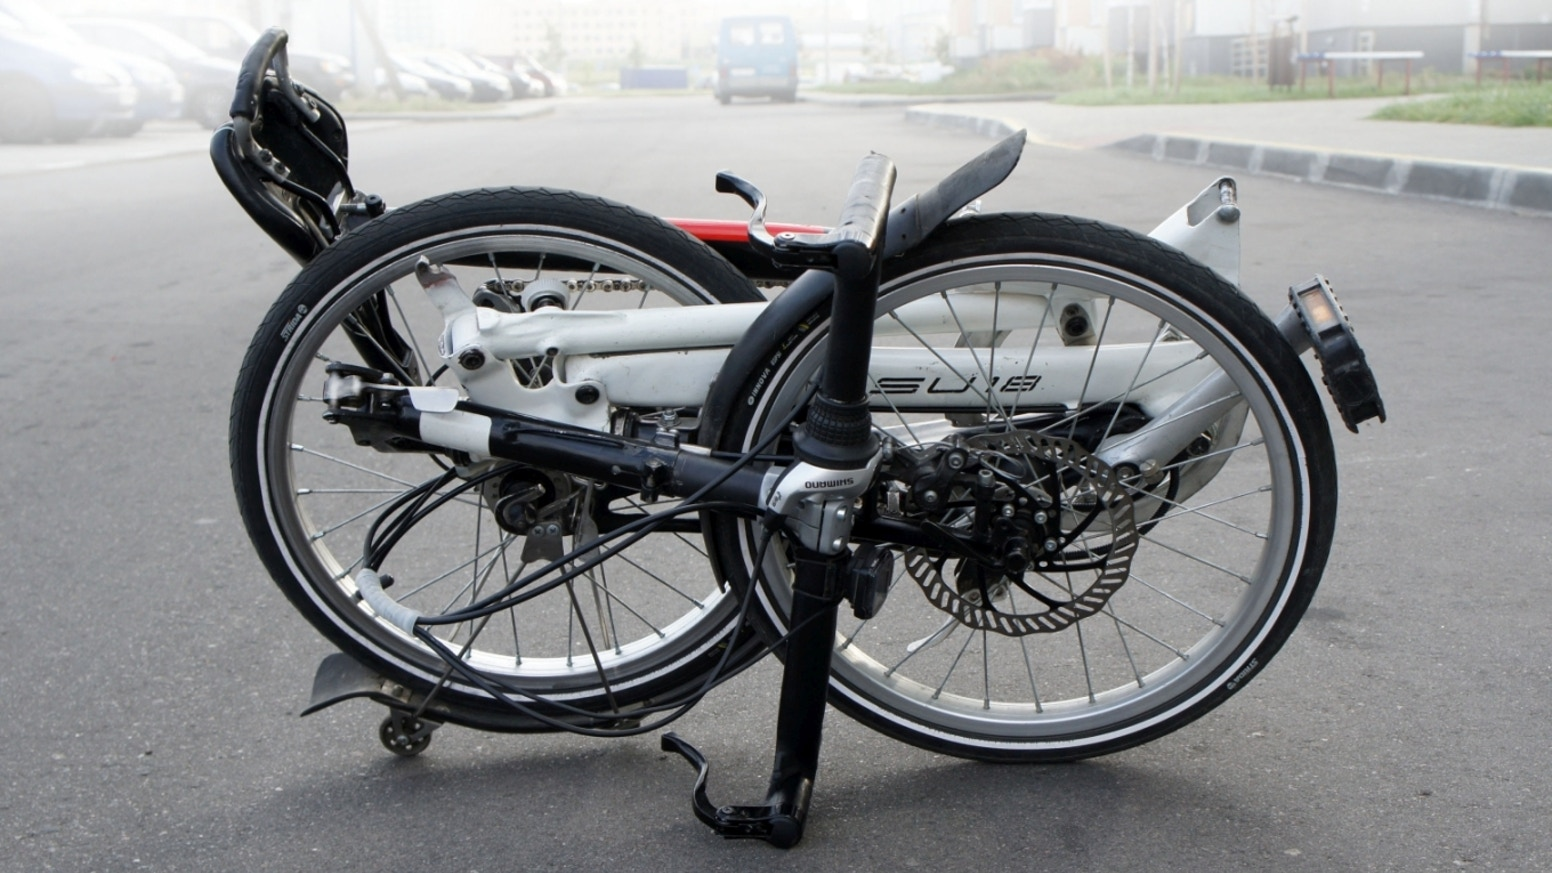 The folding bike with a revolutionary folding mechanism: It can be folded or unfolded in just 3-5 sec!